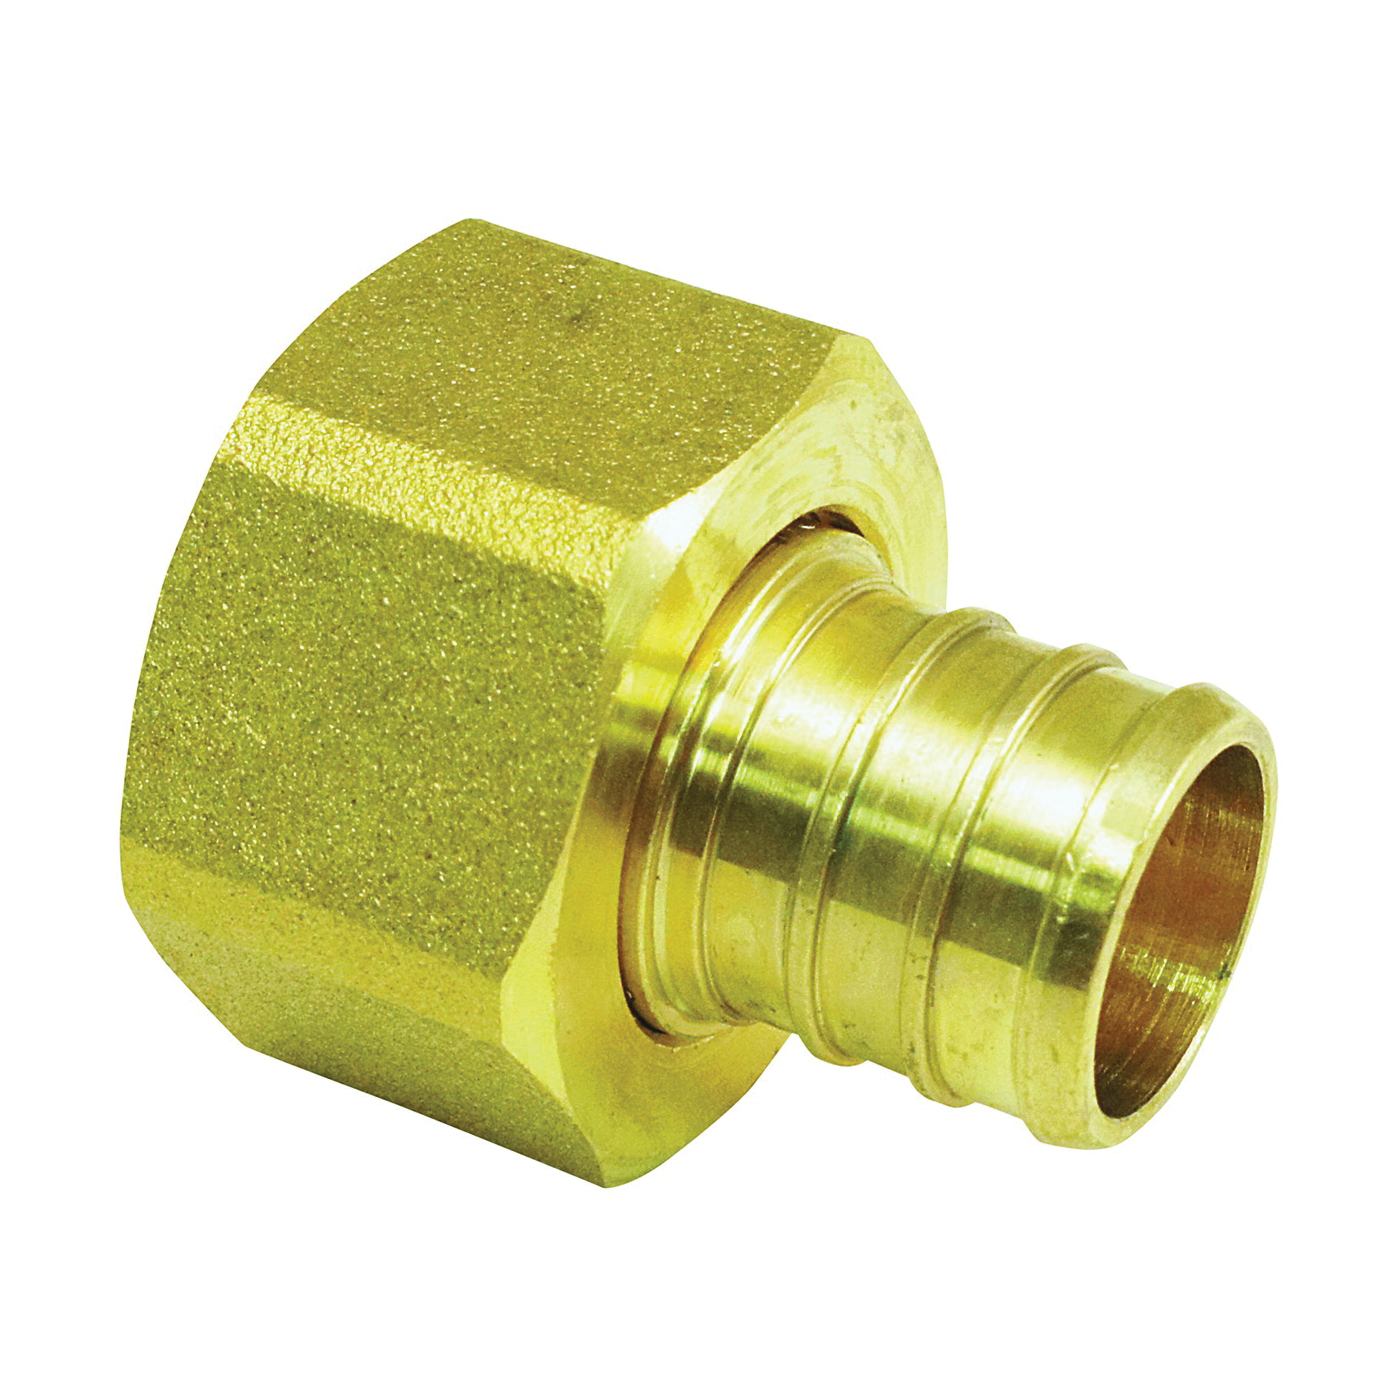 Picture of Apollo APXFF3434S Hose Adapter, 3/4 in, Barb x FPT, Brass, 200 psi Pressure